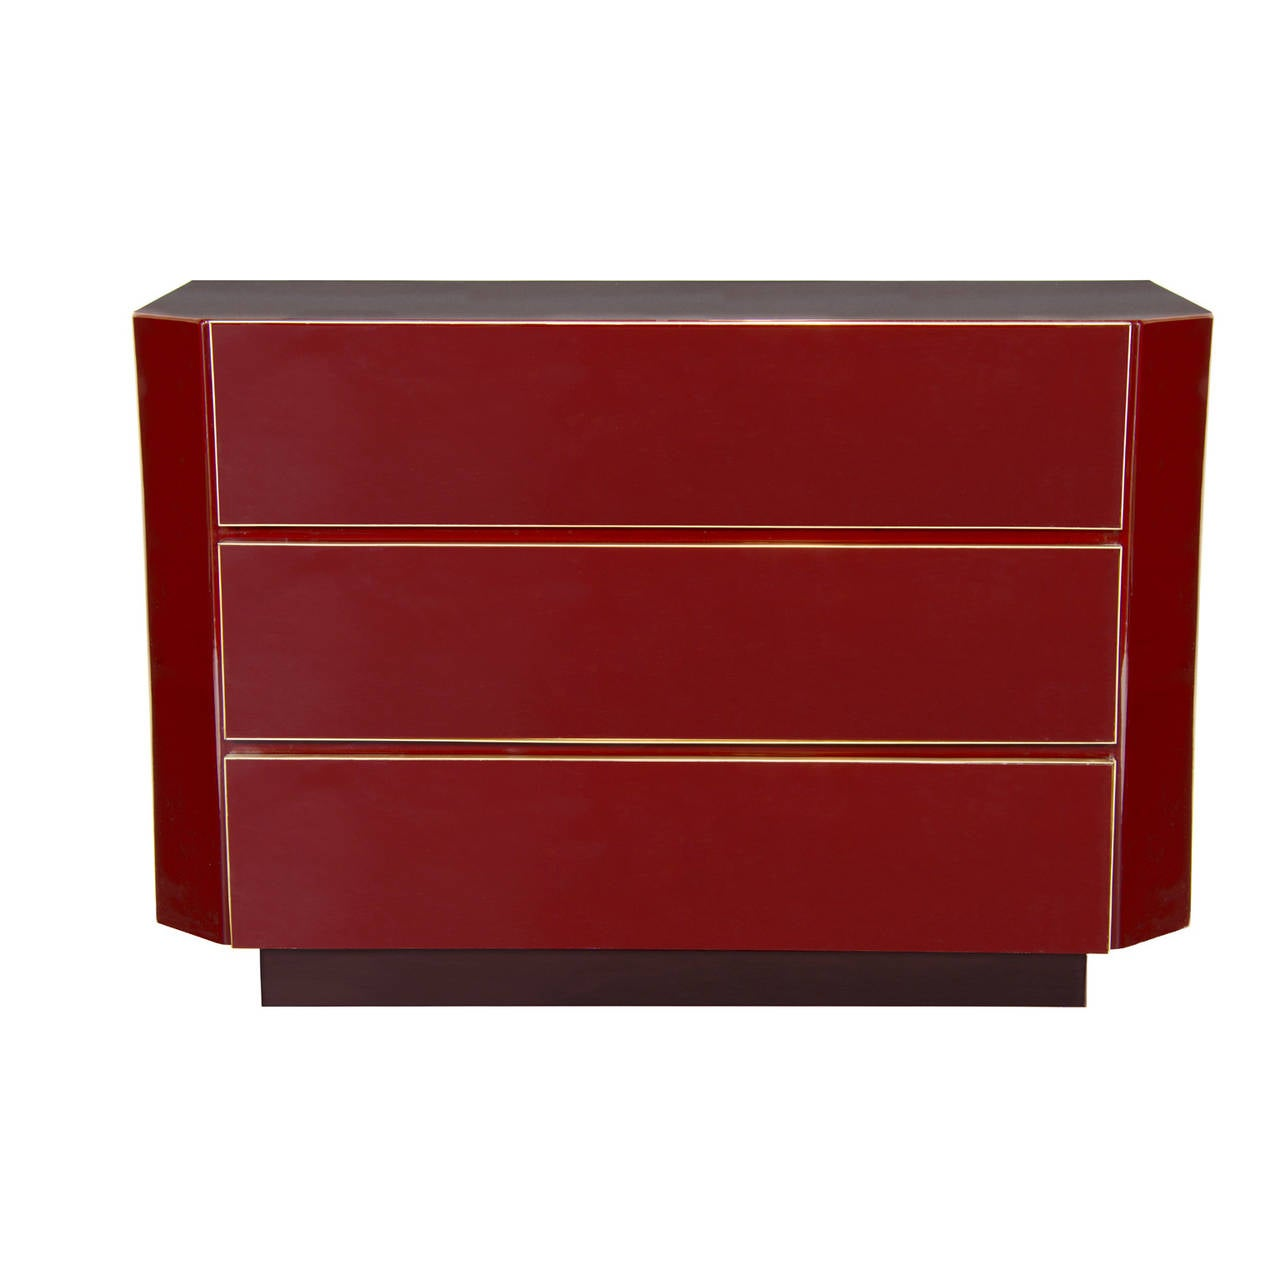 Lacquered 1970s Burgundy Red Lacquer Chest Attributed to Maison Jansen For Sale